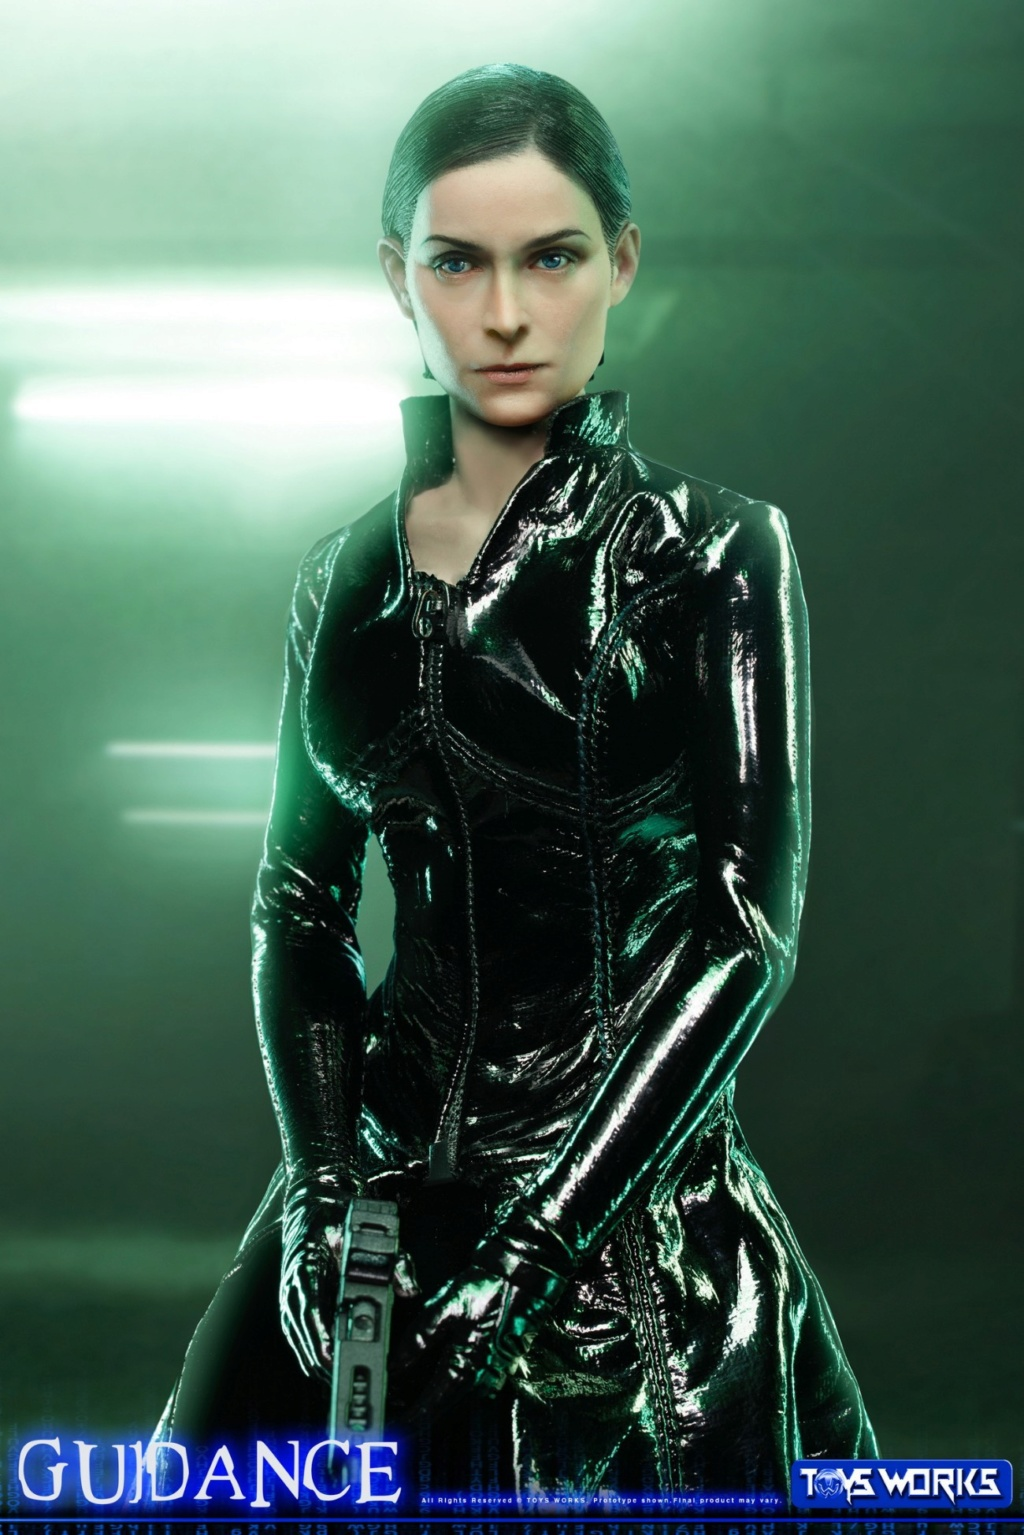 Female - NEW PRODUCT: Toys Works: 1/6 Guidance Action Figure TW012 16584711